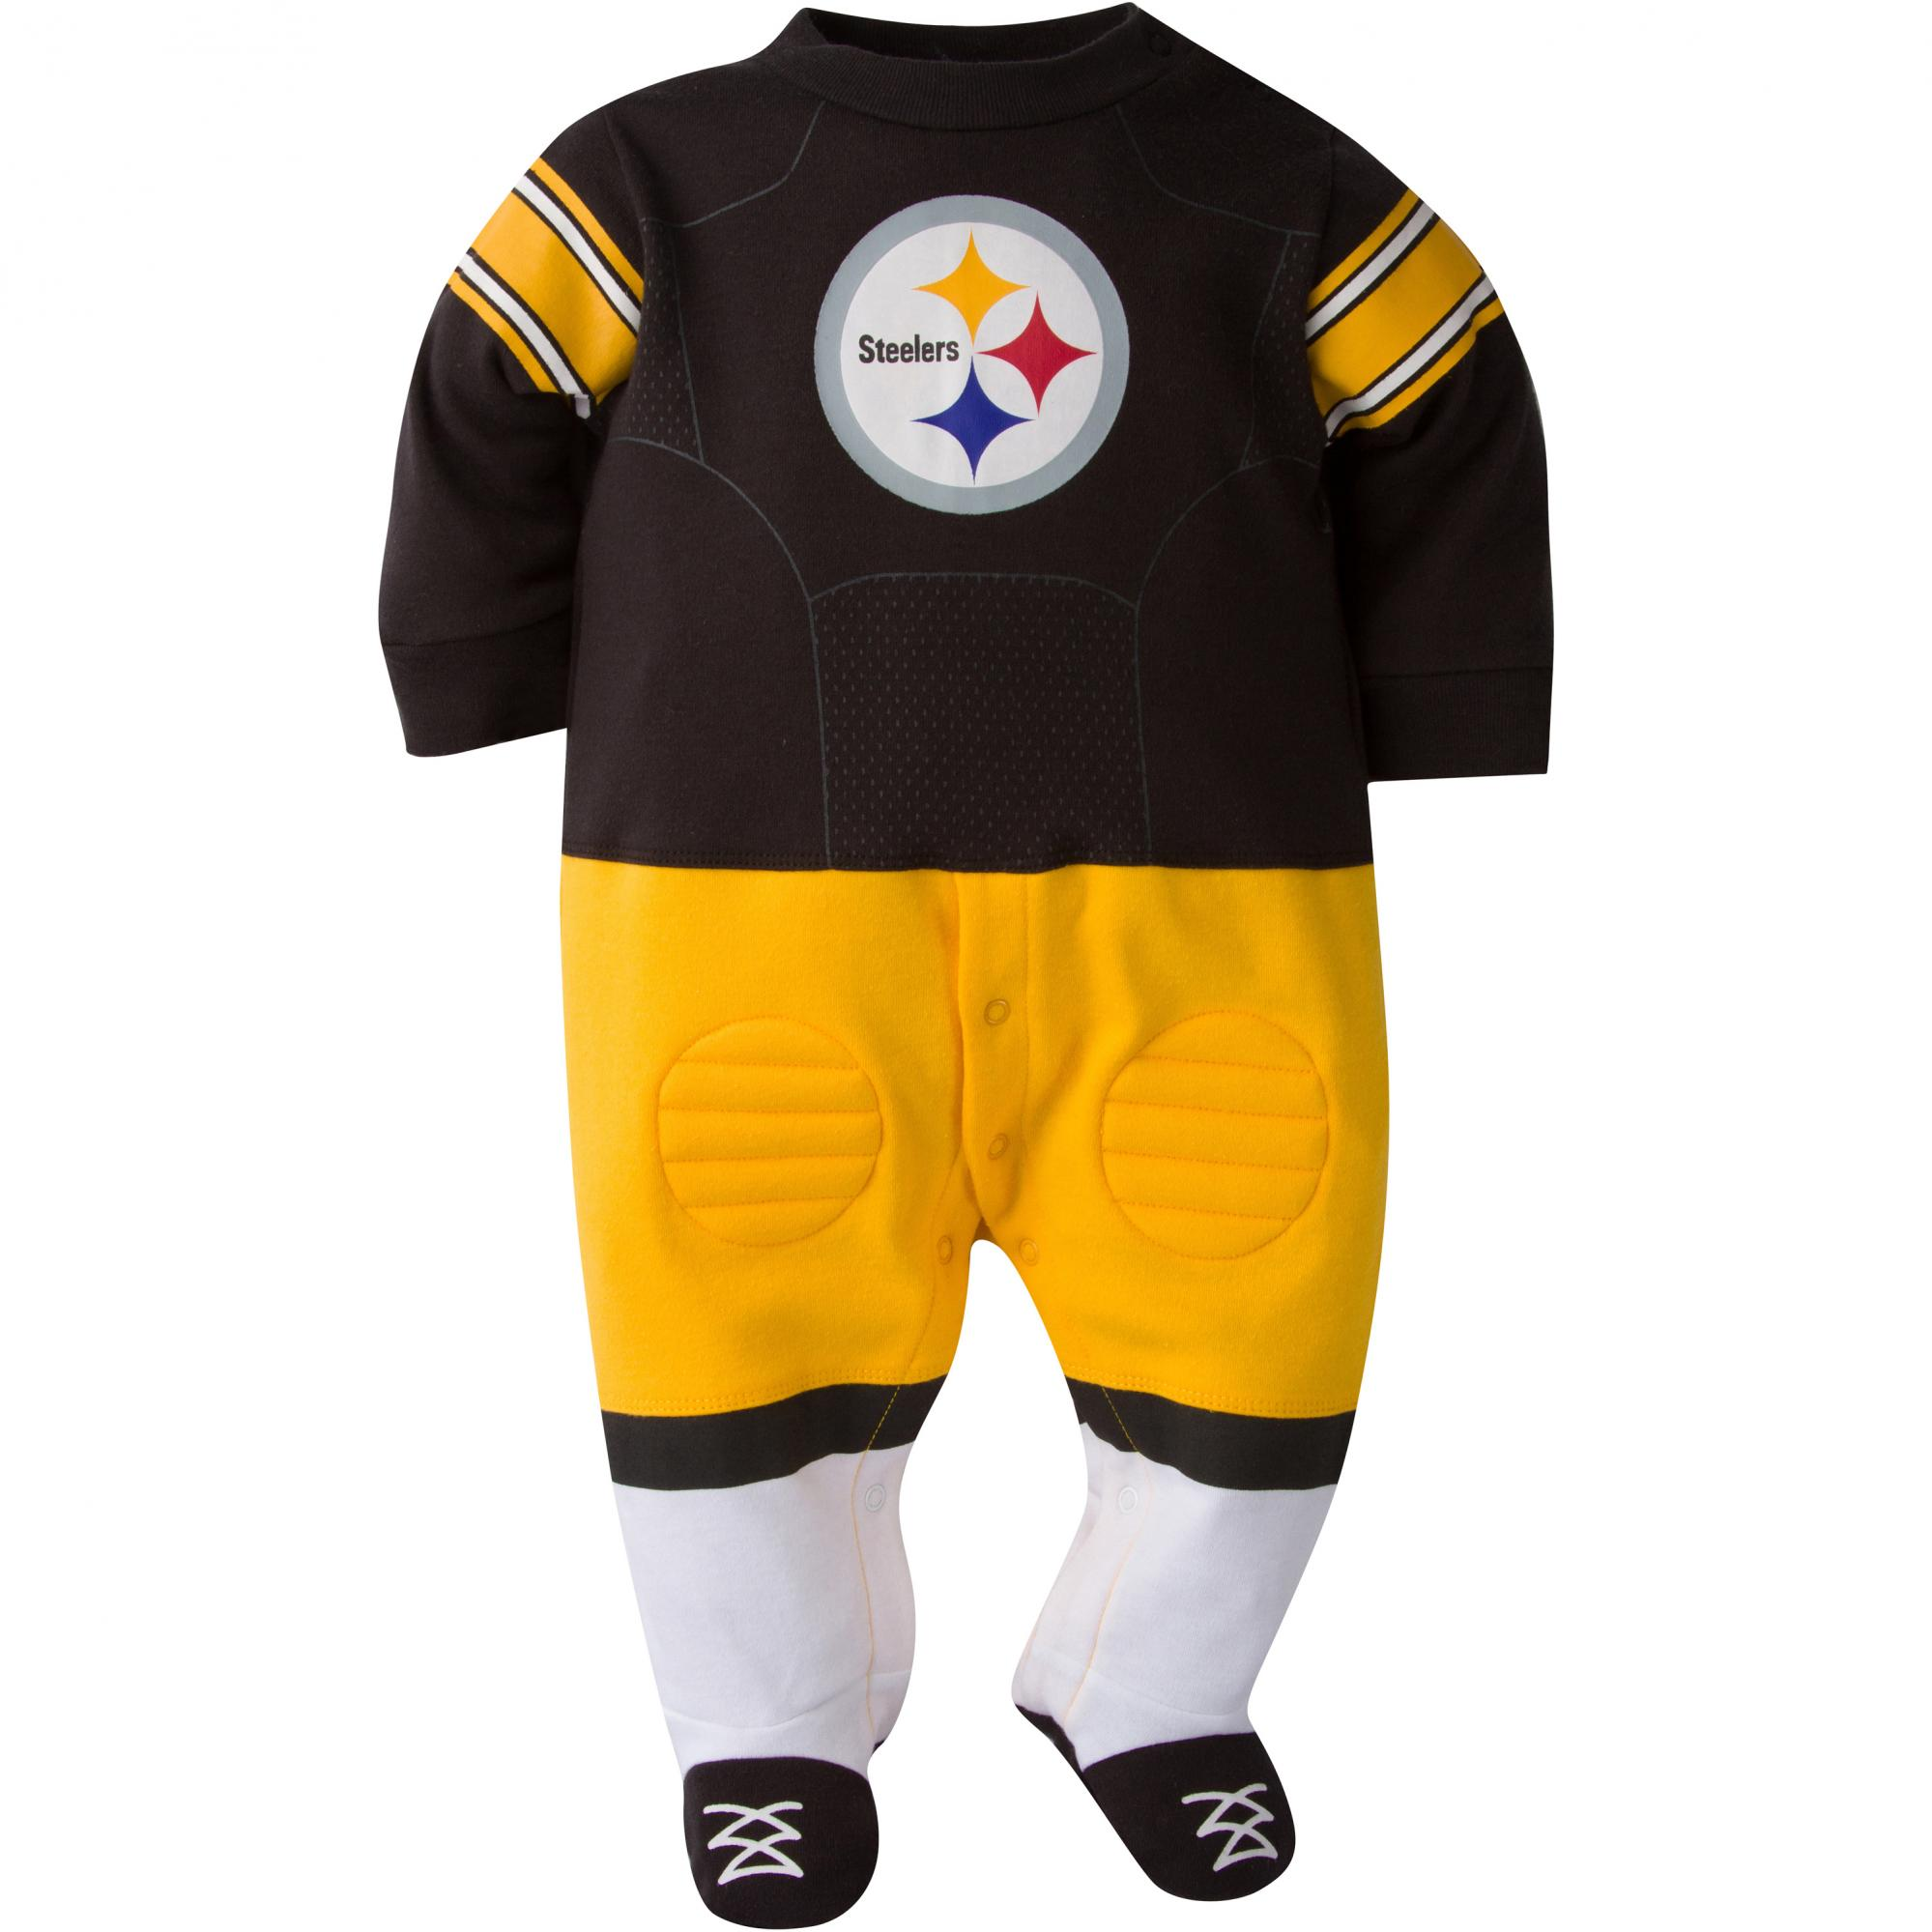 nfl-steelers-player-playersuit.jpg